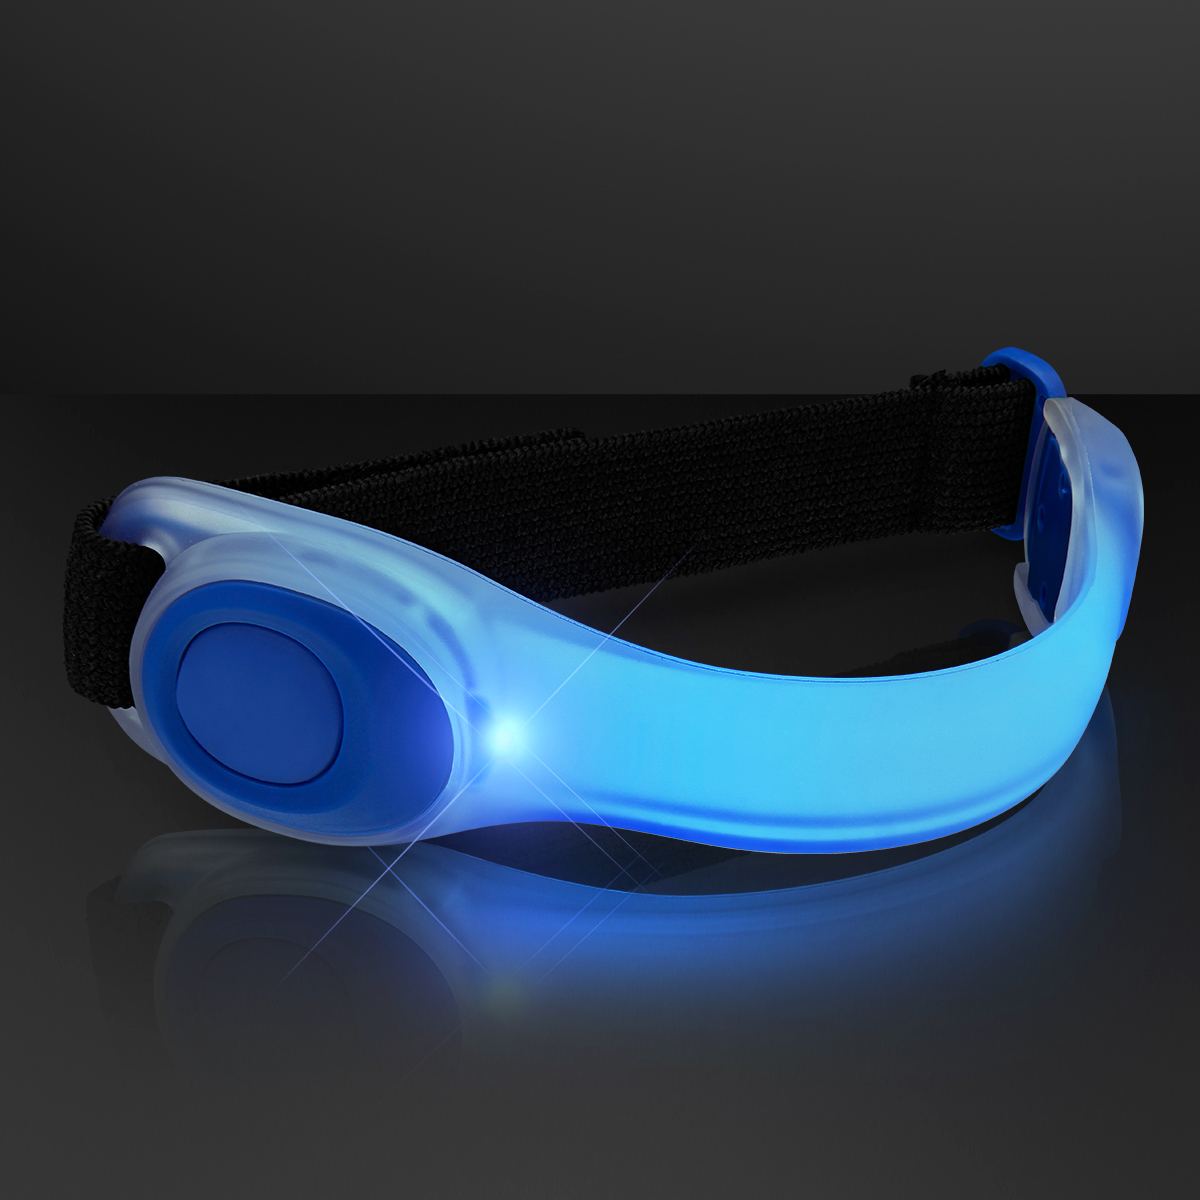 FlashingBlinkyLights Deluxe LED Armbands for Night Safety